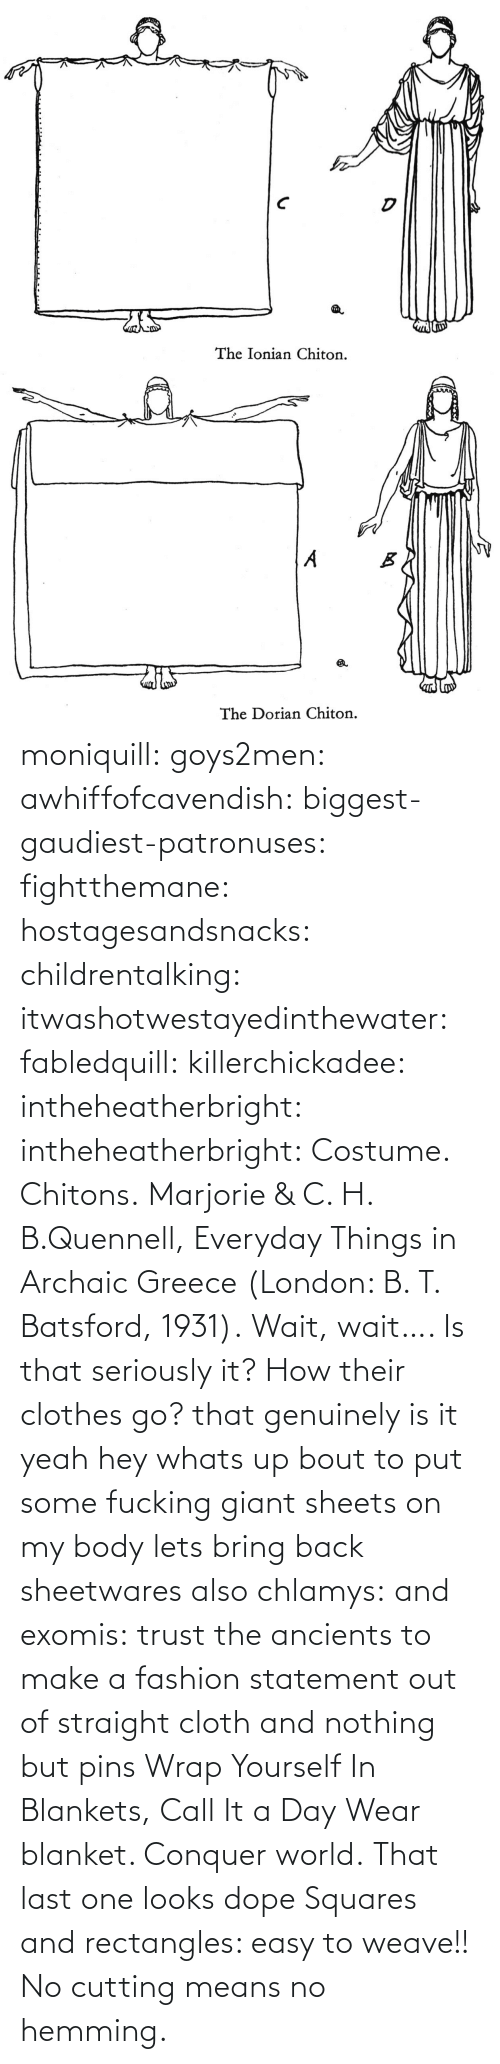 Bubble: moniquill: goys2men:  awhiffofcavendish:  biggest-gaudiest-patronuses:  fightthemane:  hostagesandsnacks:  childrentalking:  itwashotwestayedinthewater:  fabledquill:  killerchickadee:  intheheatherbright:  intheheatherbright:  Costume. Chitons.  Marjorie & C. H. B.Quennell, Everyday Things in Archaic Greece (London: B. T. Batsford, 1931).  Wait, wait…. Is that seriously it? How their clothes go?  that genuinely is it  yeah hey whats up bout to put some fucking giant sheets on my body  lets bring back sheetwares  also chlamys: and exomis:  trust the ancients to make a fashion statement out of straight cloth and nothing but pins  Wrap Yourself In Blankets, Call It a Day  Wear blanket. Conquer world.   That last one looks dope    Squares and rectangles: easy to weave!! No cutting means no hemming.